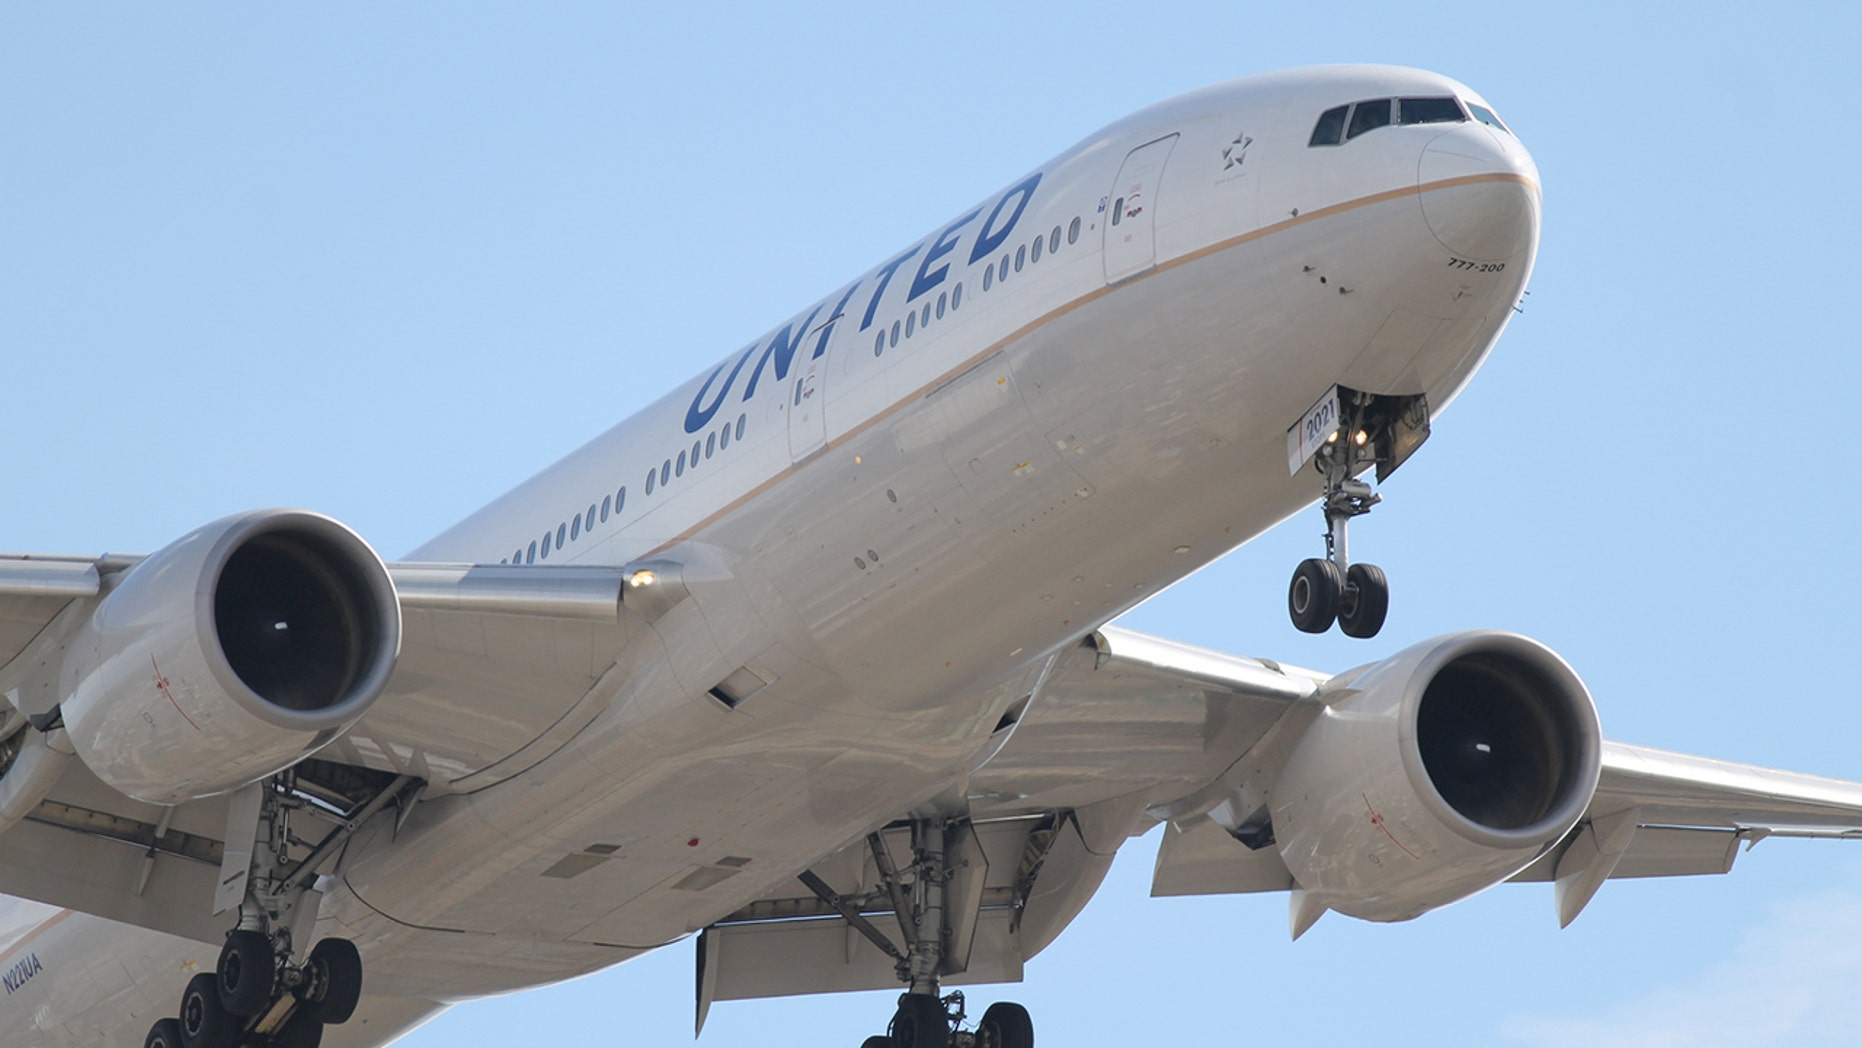 United has done away with surfboard fees for California flights.